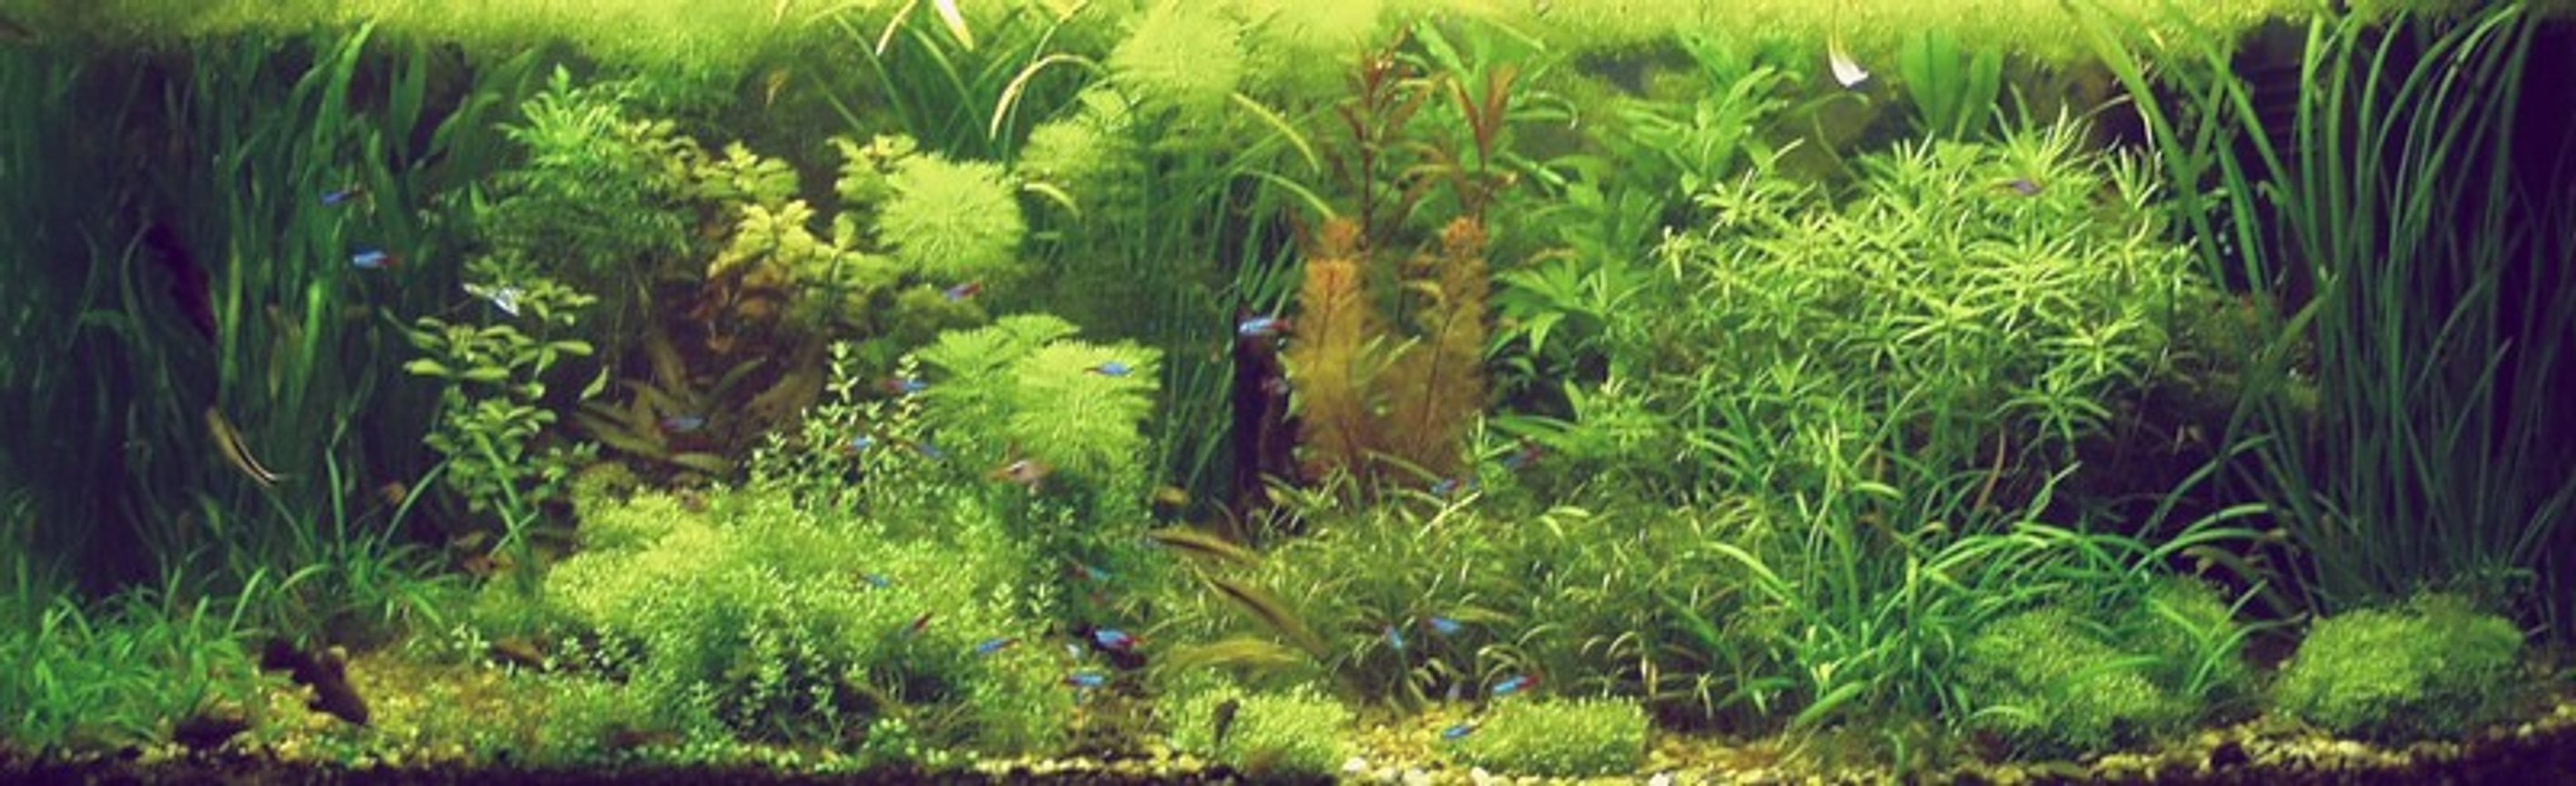 100 gallons planted tank (mostly live plants and fish) - My planted aquarium